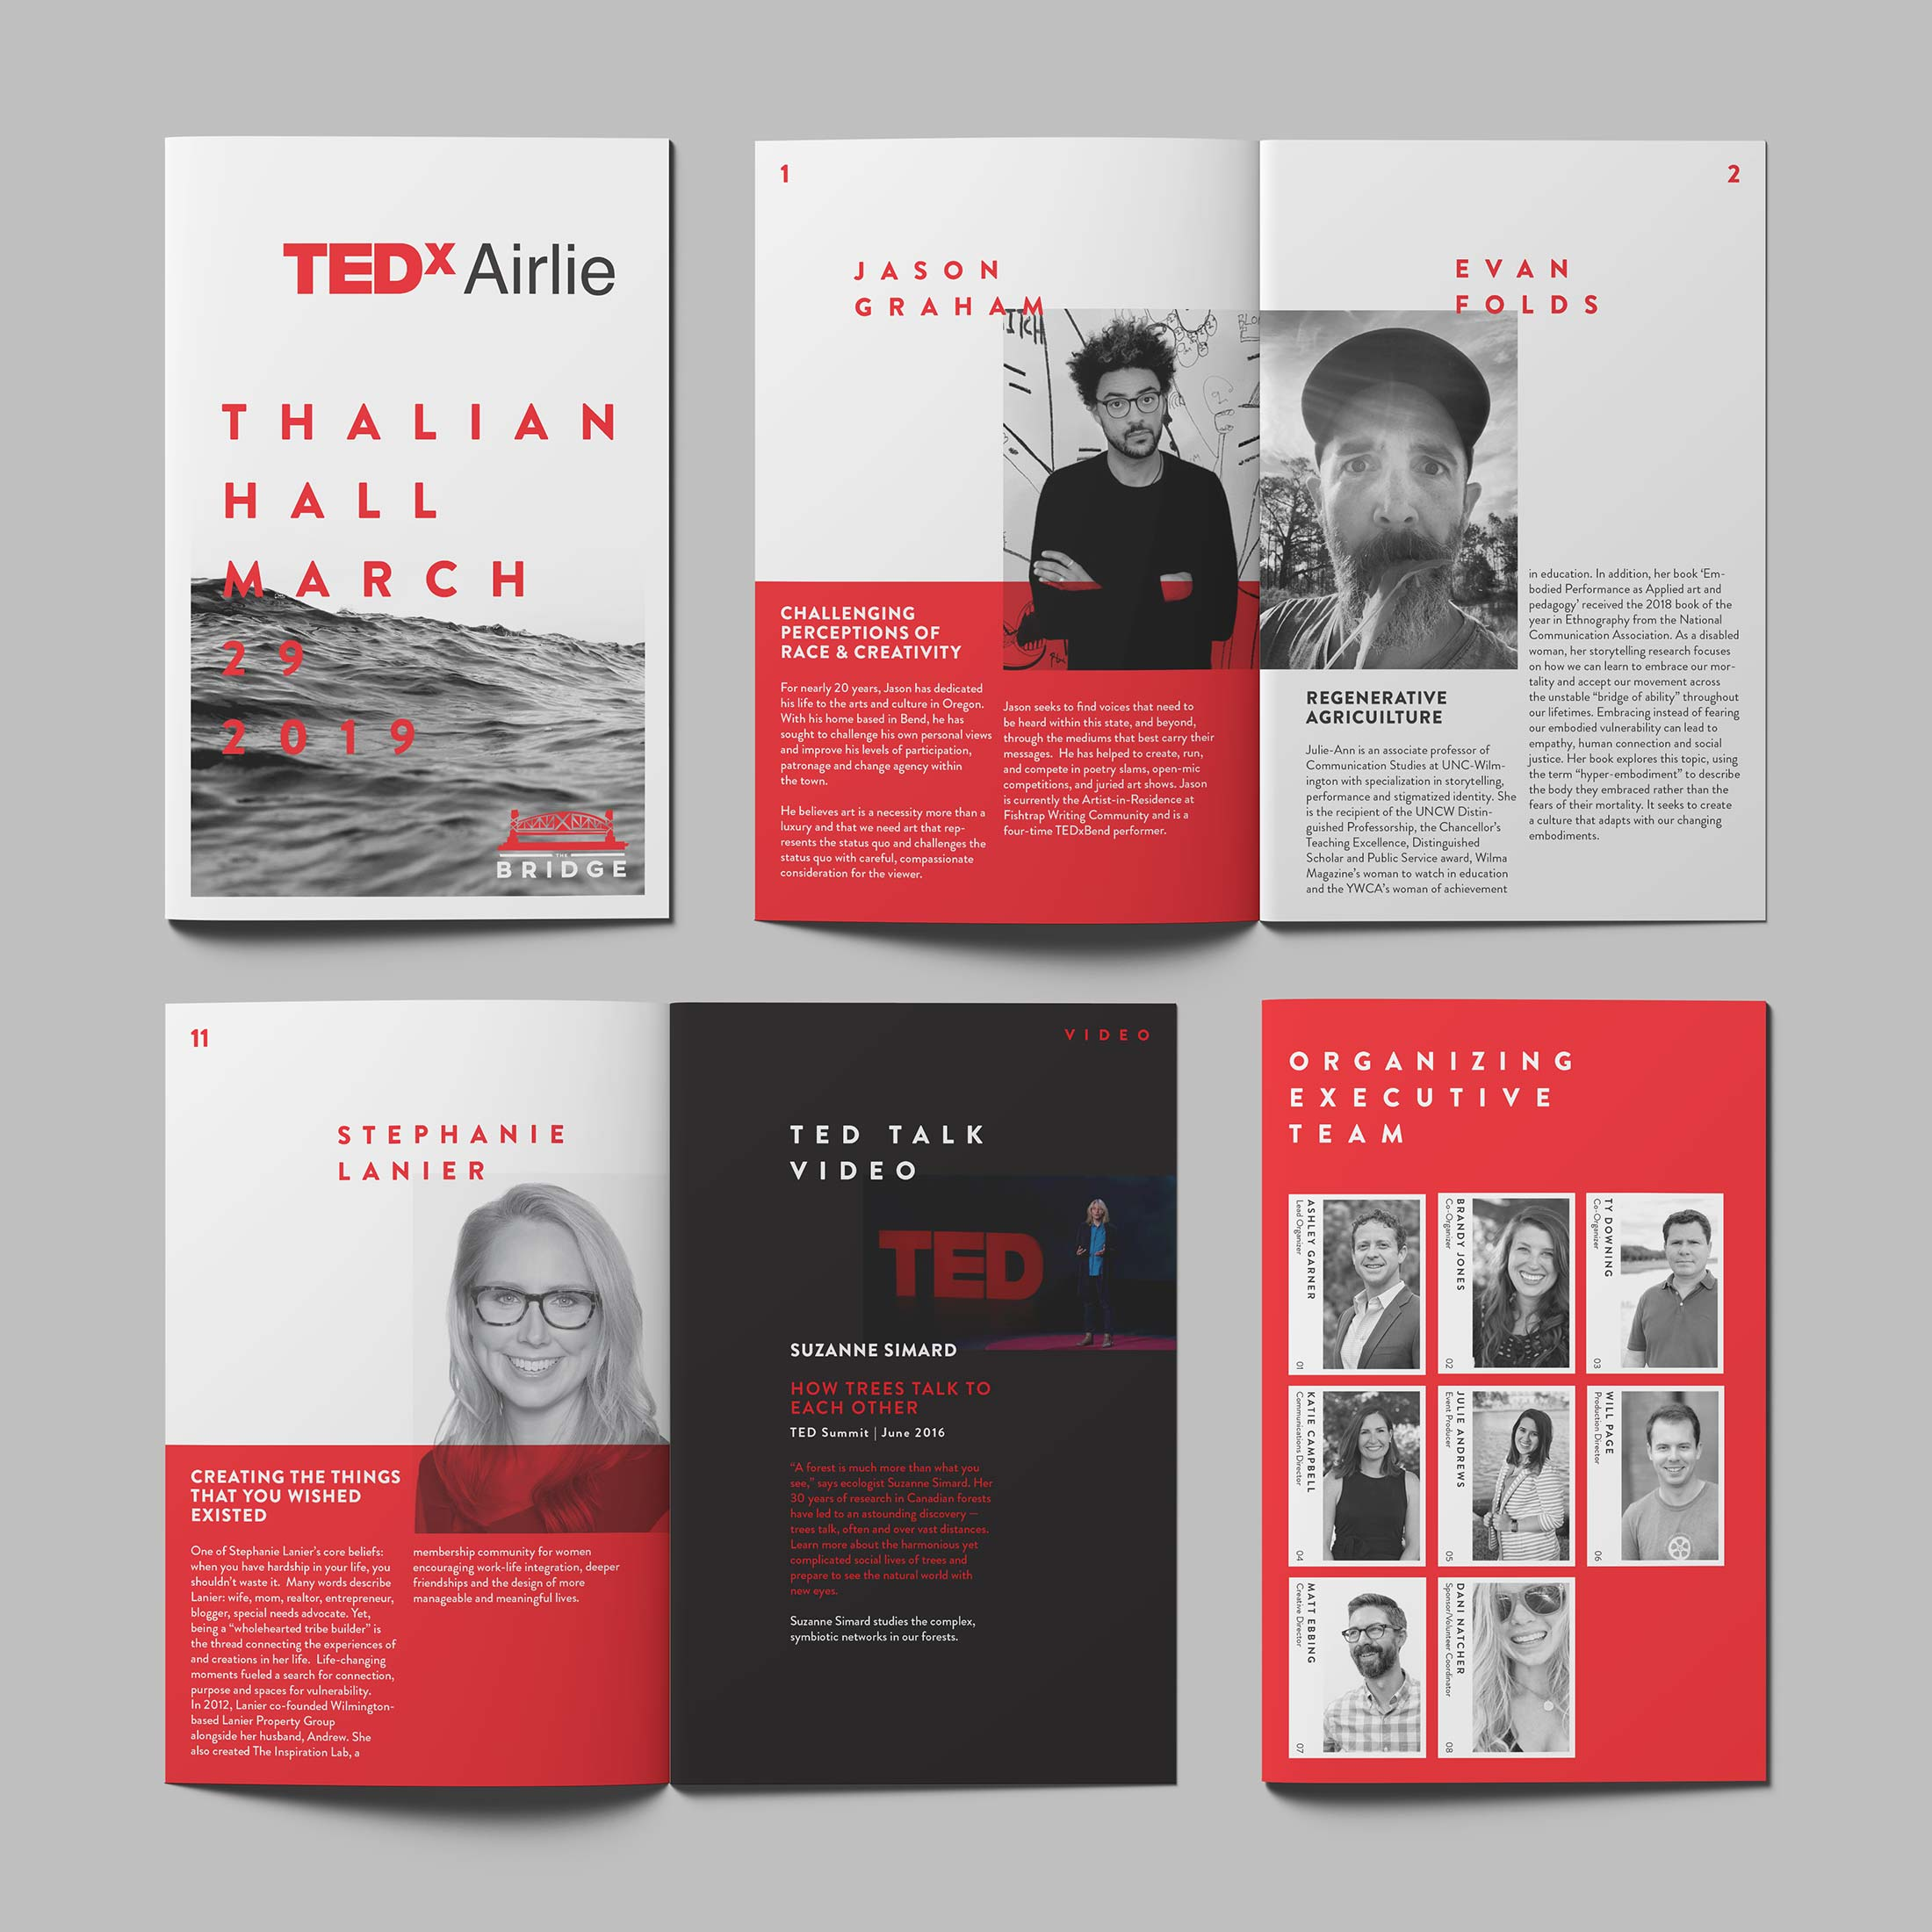 TEDxAirlie_TEDx-Wilmignton-Branding-Booklet-Program-Design_CoverPlusTwo.jpg